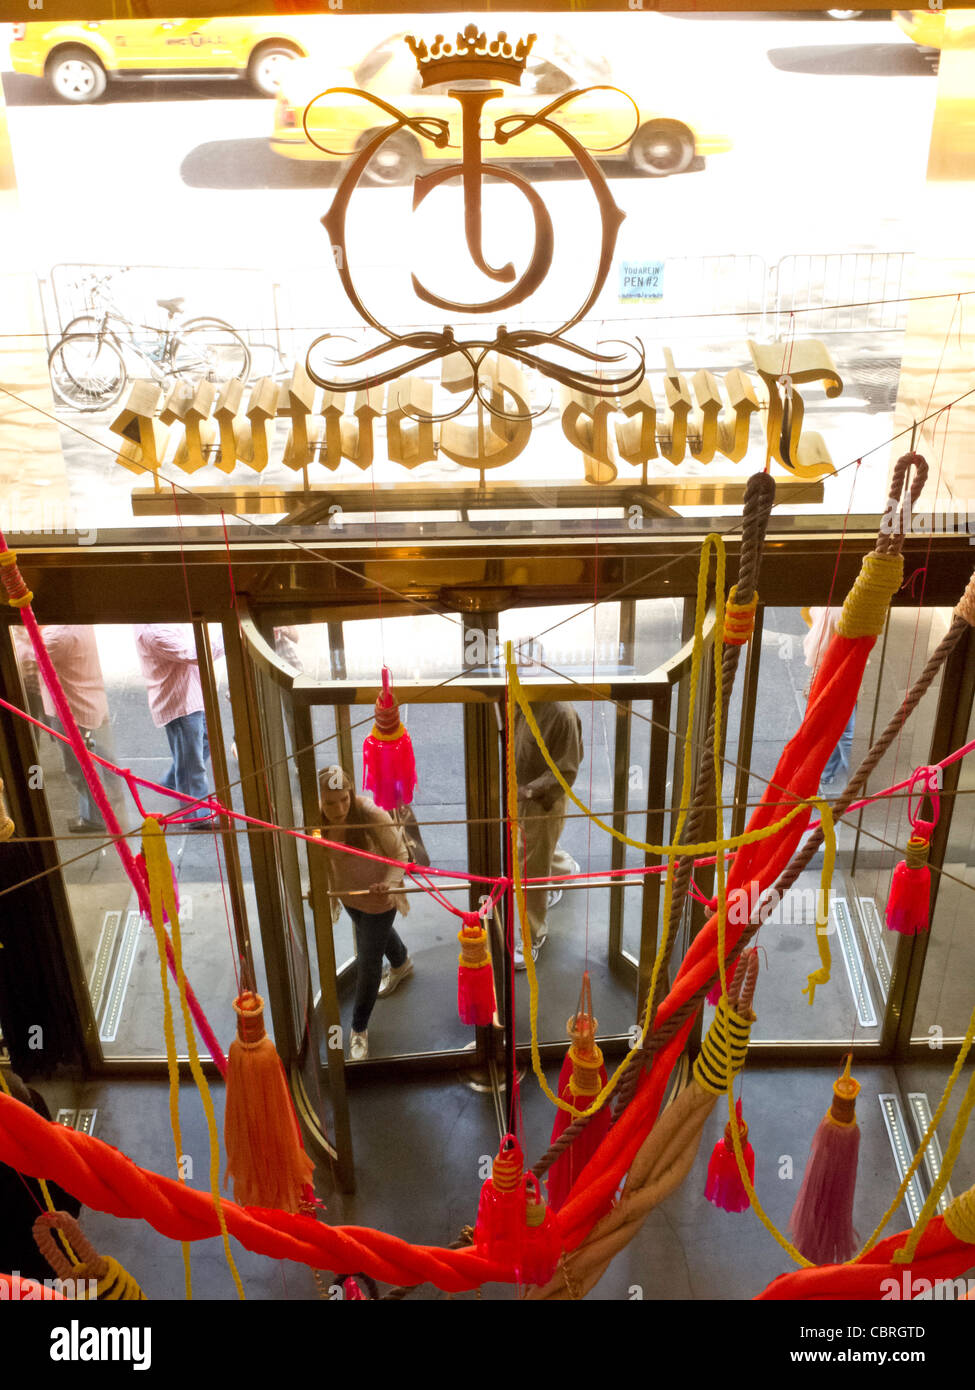 Juicy Couture Store Interior, Fifth Avenue, NYC - Stock Image